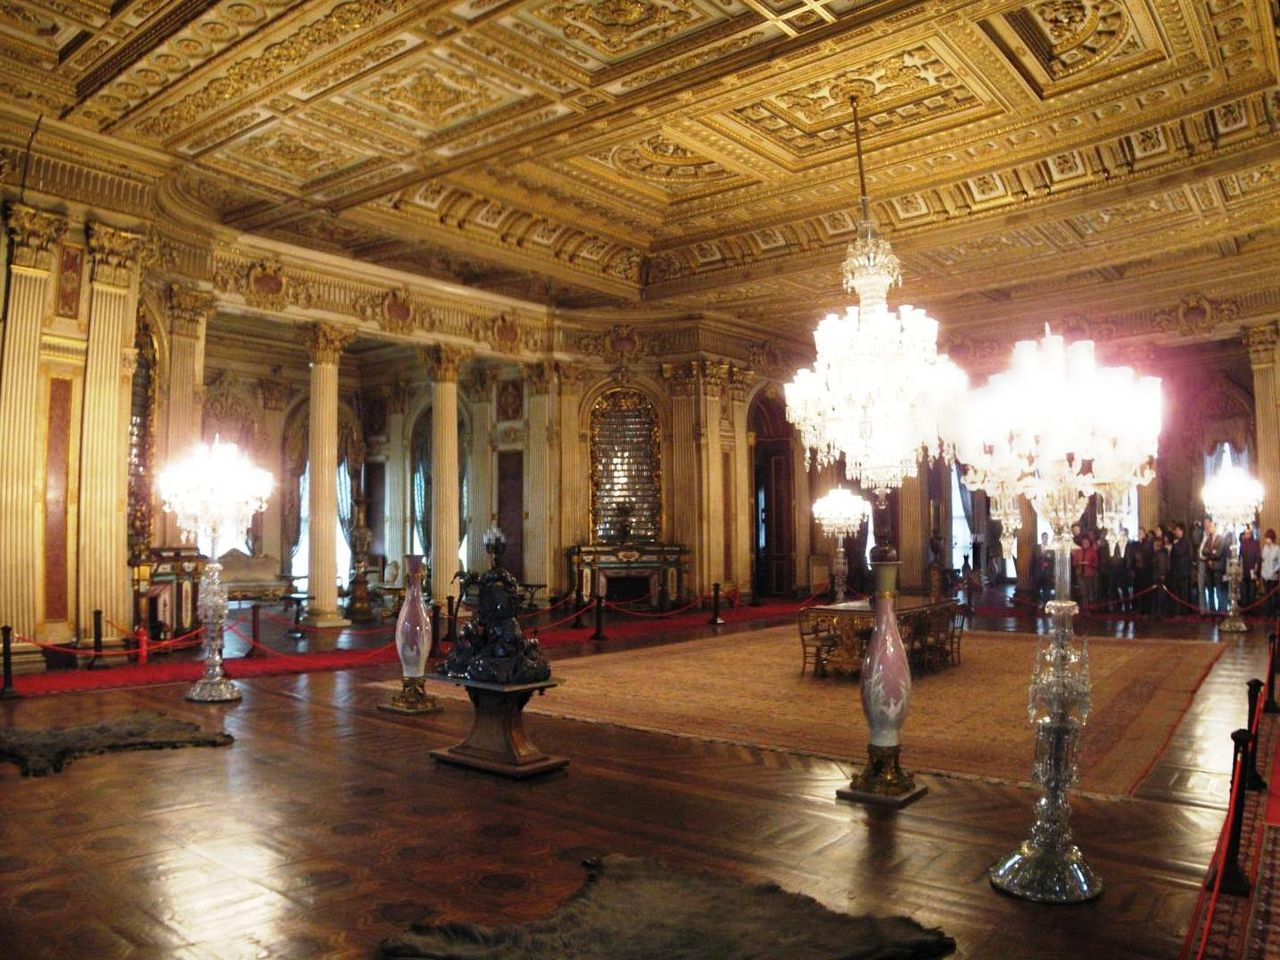 1280px-Ambassador_Hall_Dolmabahce_March_2008panoc.jpg